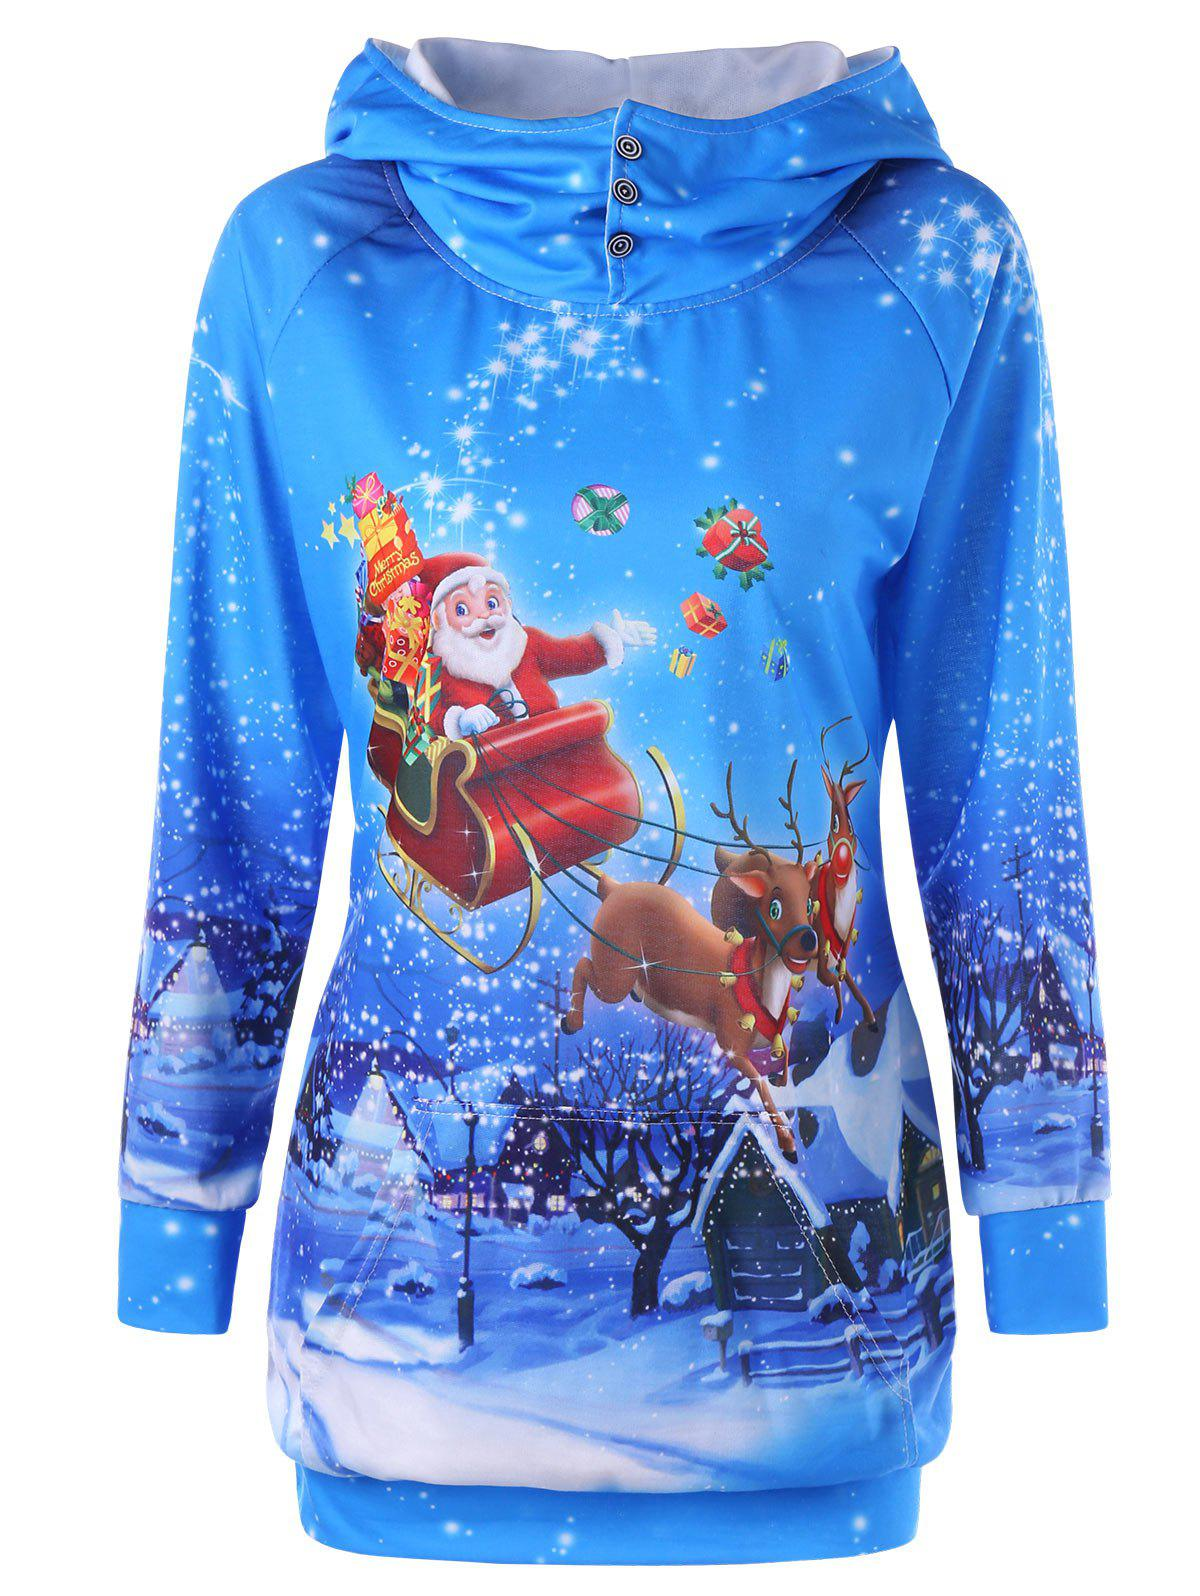 Snowflake Santa Claus Print Graphic Christmas HoodieWOMEN<br><br>Size: XL; Color: BLUE; Material: Polyester; Shirt Length: Long; Sleeve Length: Full; Style: Fashion; Pattern Style: Print; Season: Fall,Spring; Weight: 0.4000kg; Package Contents: 1 x Hoodie;